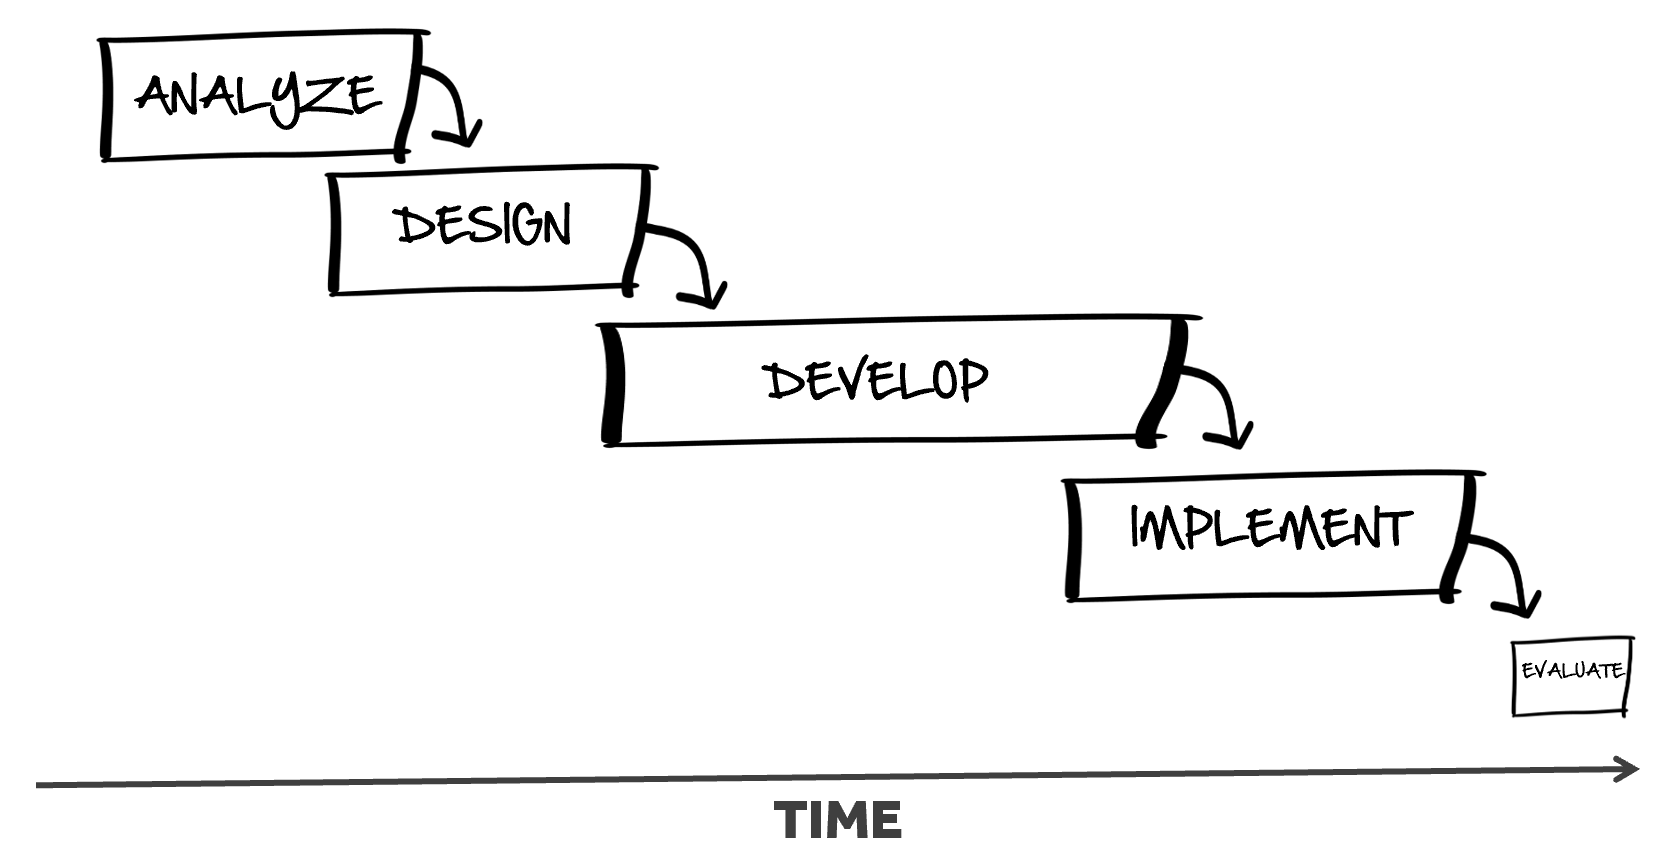 Leadership Roles Key to Adopting Agile Project Management